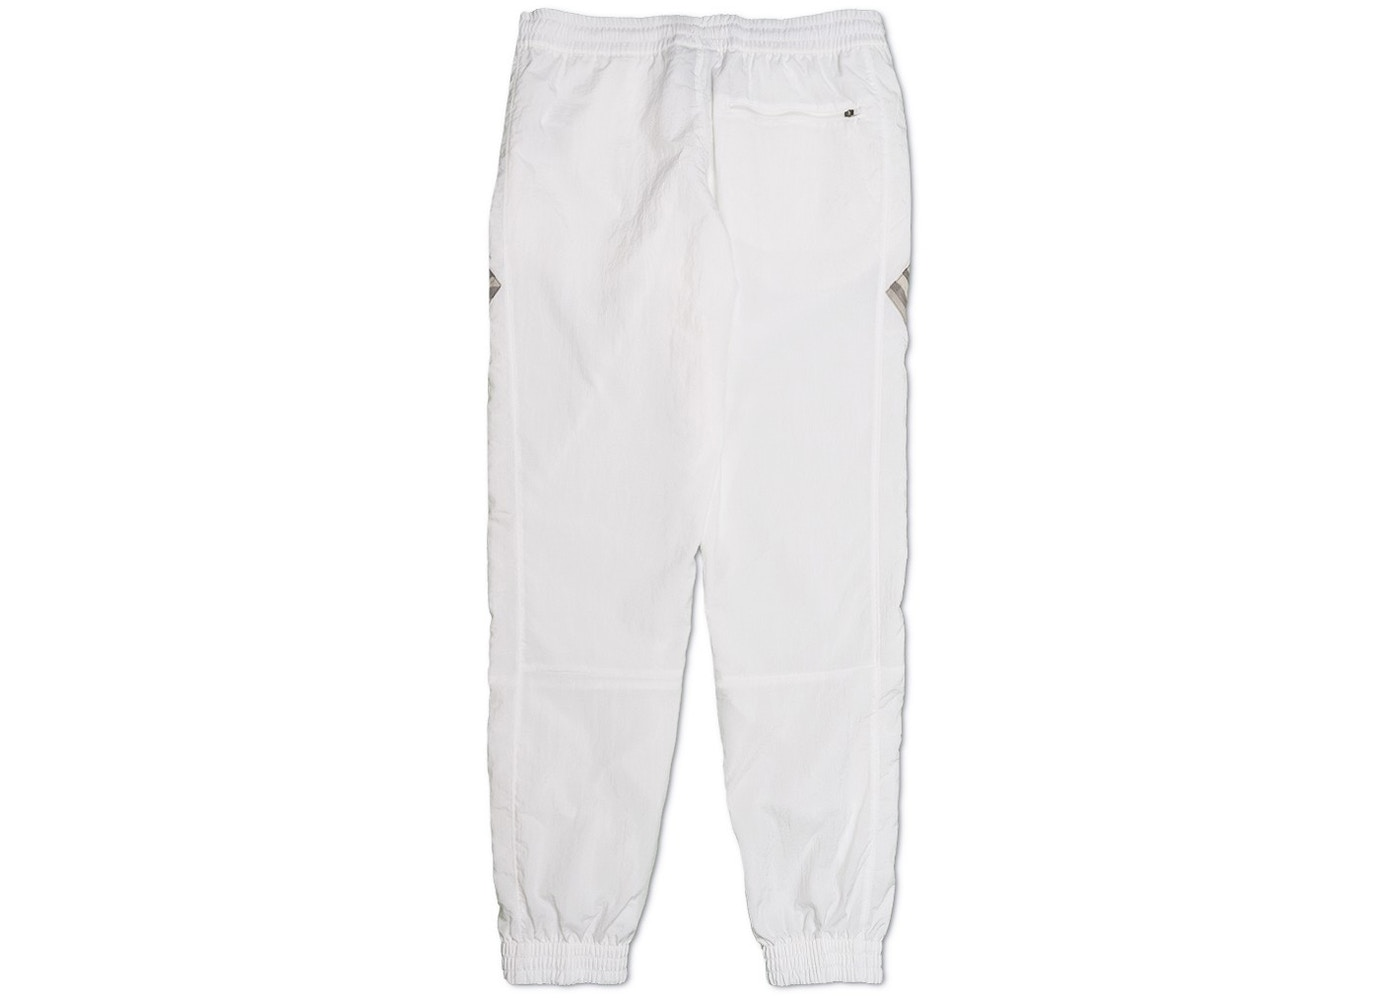 2421b8491f Nike x Parra Woven Warm Up Tracksuit (Jacket and Pants Set) White - SS18